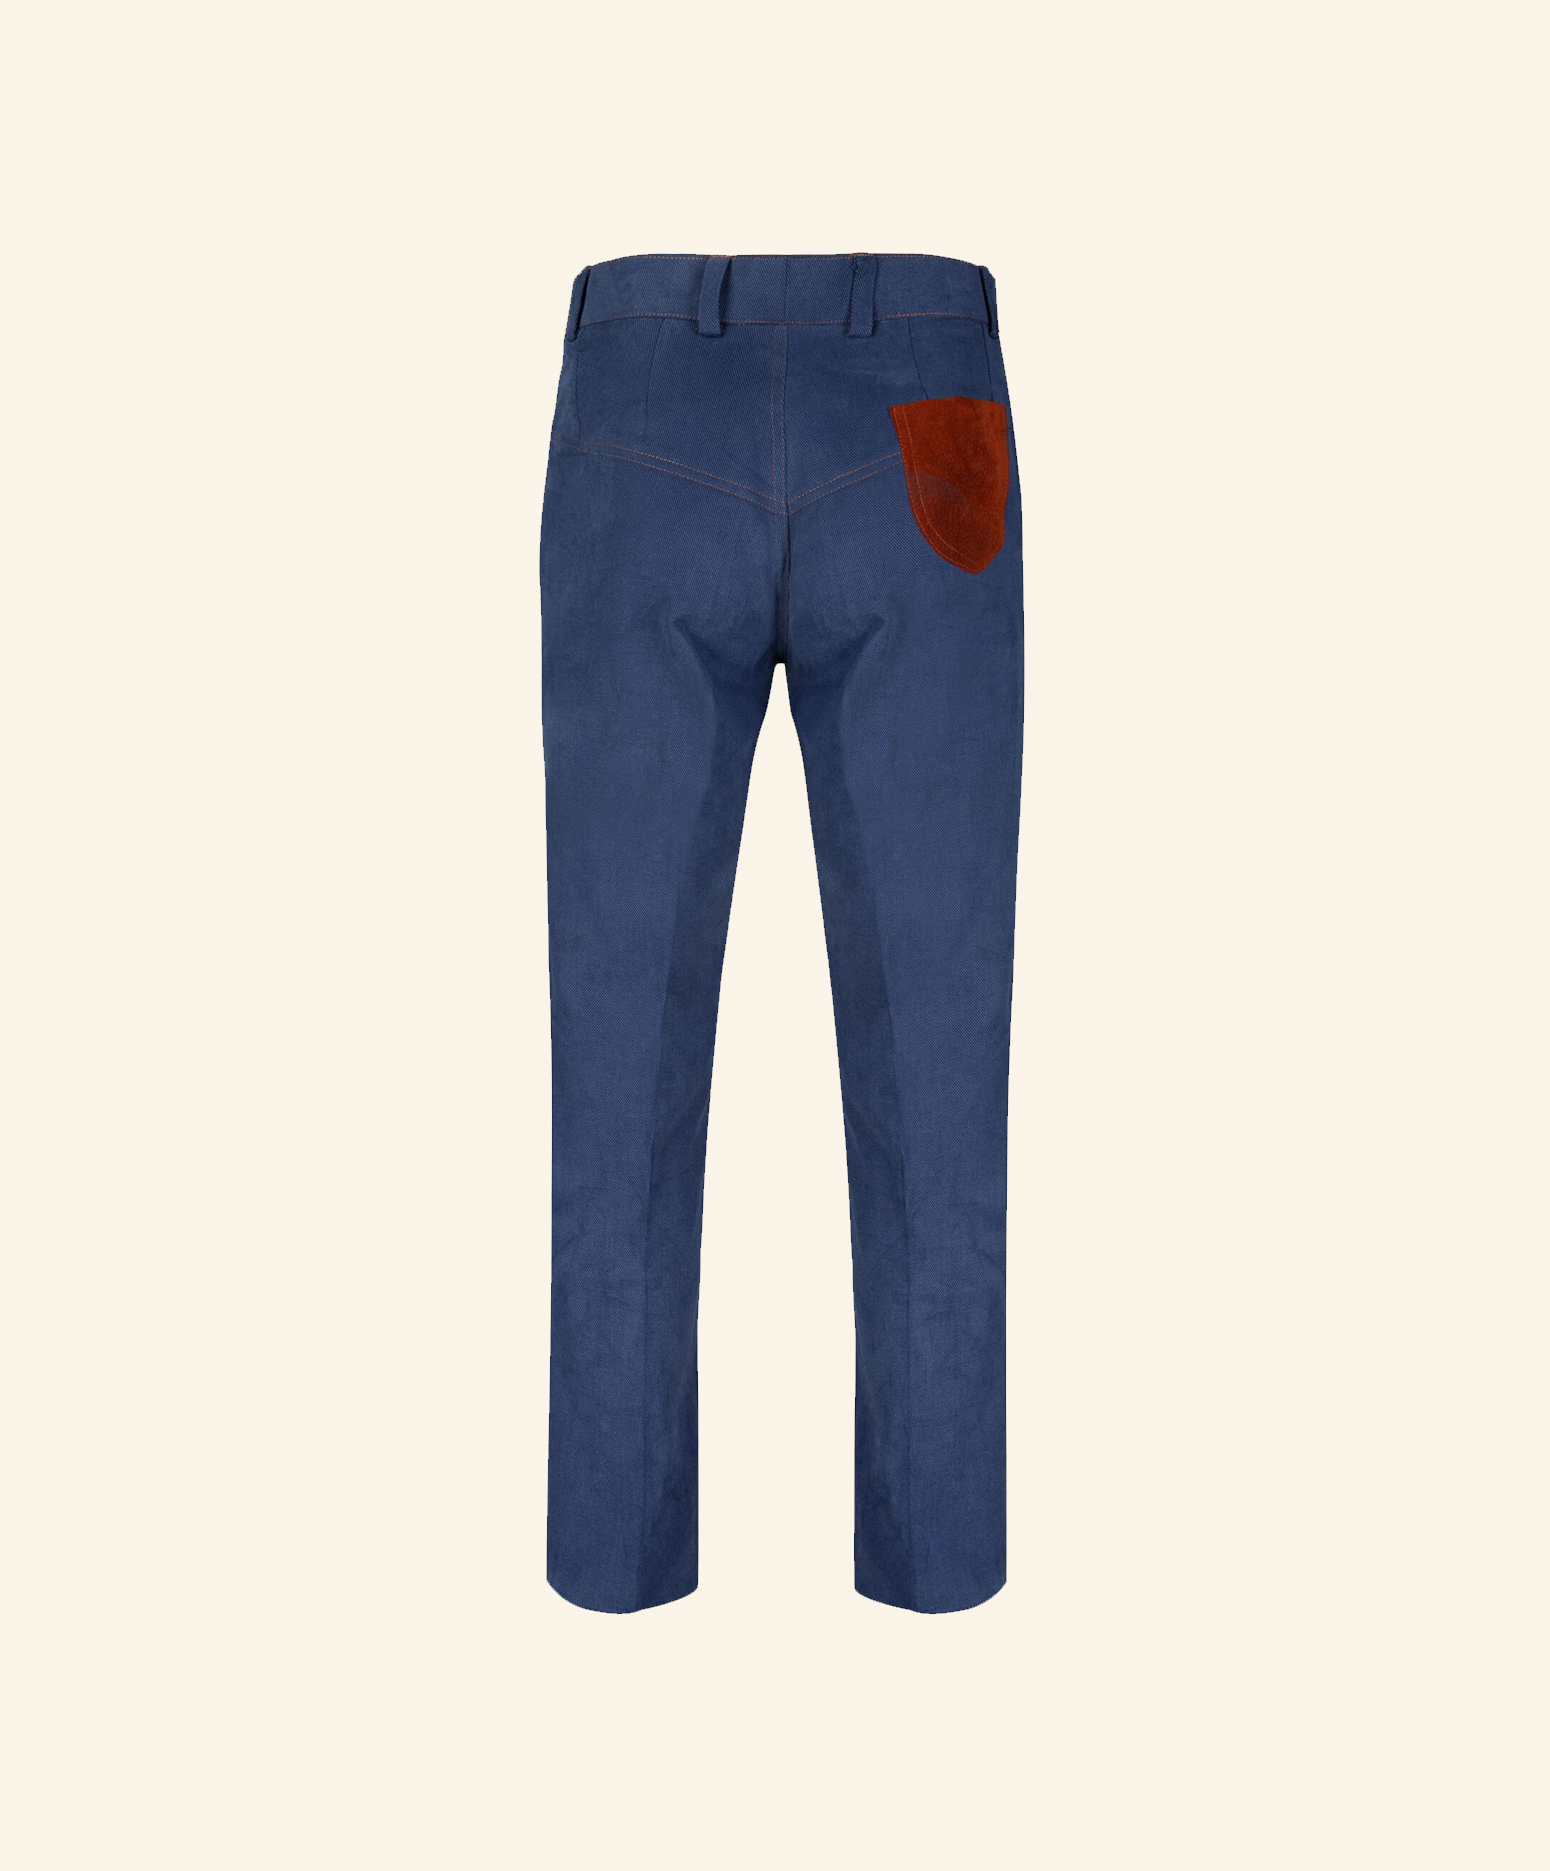 https://www.sannelondon.com/wp-content/uploads/2019/07/blue-pants-back-.jpg